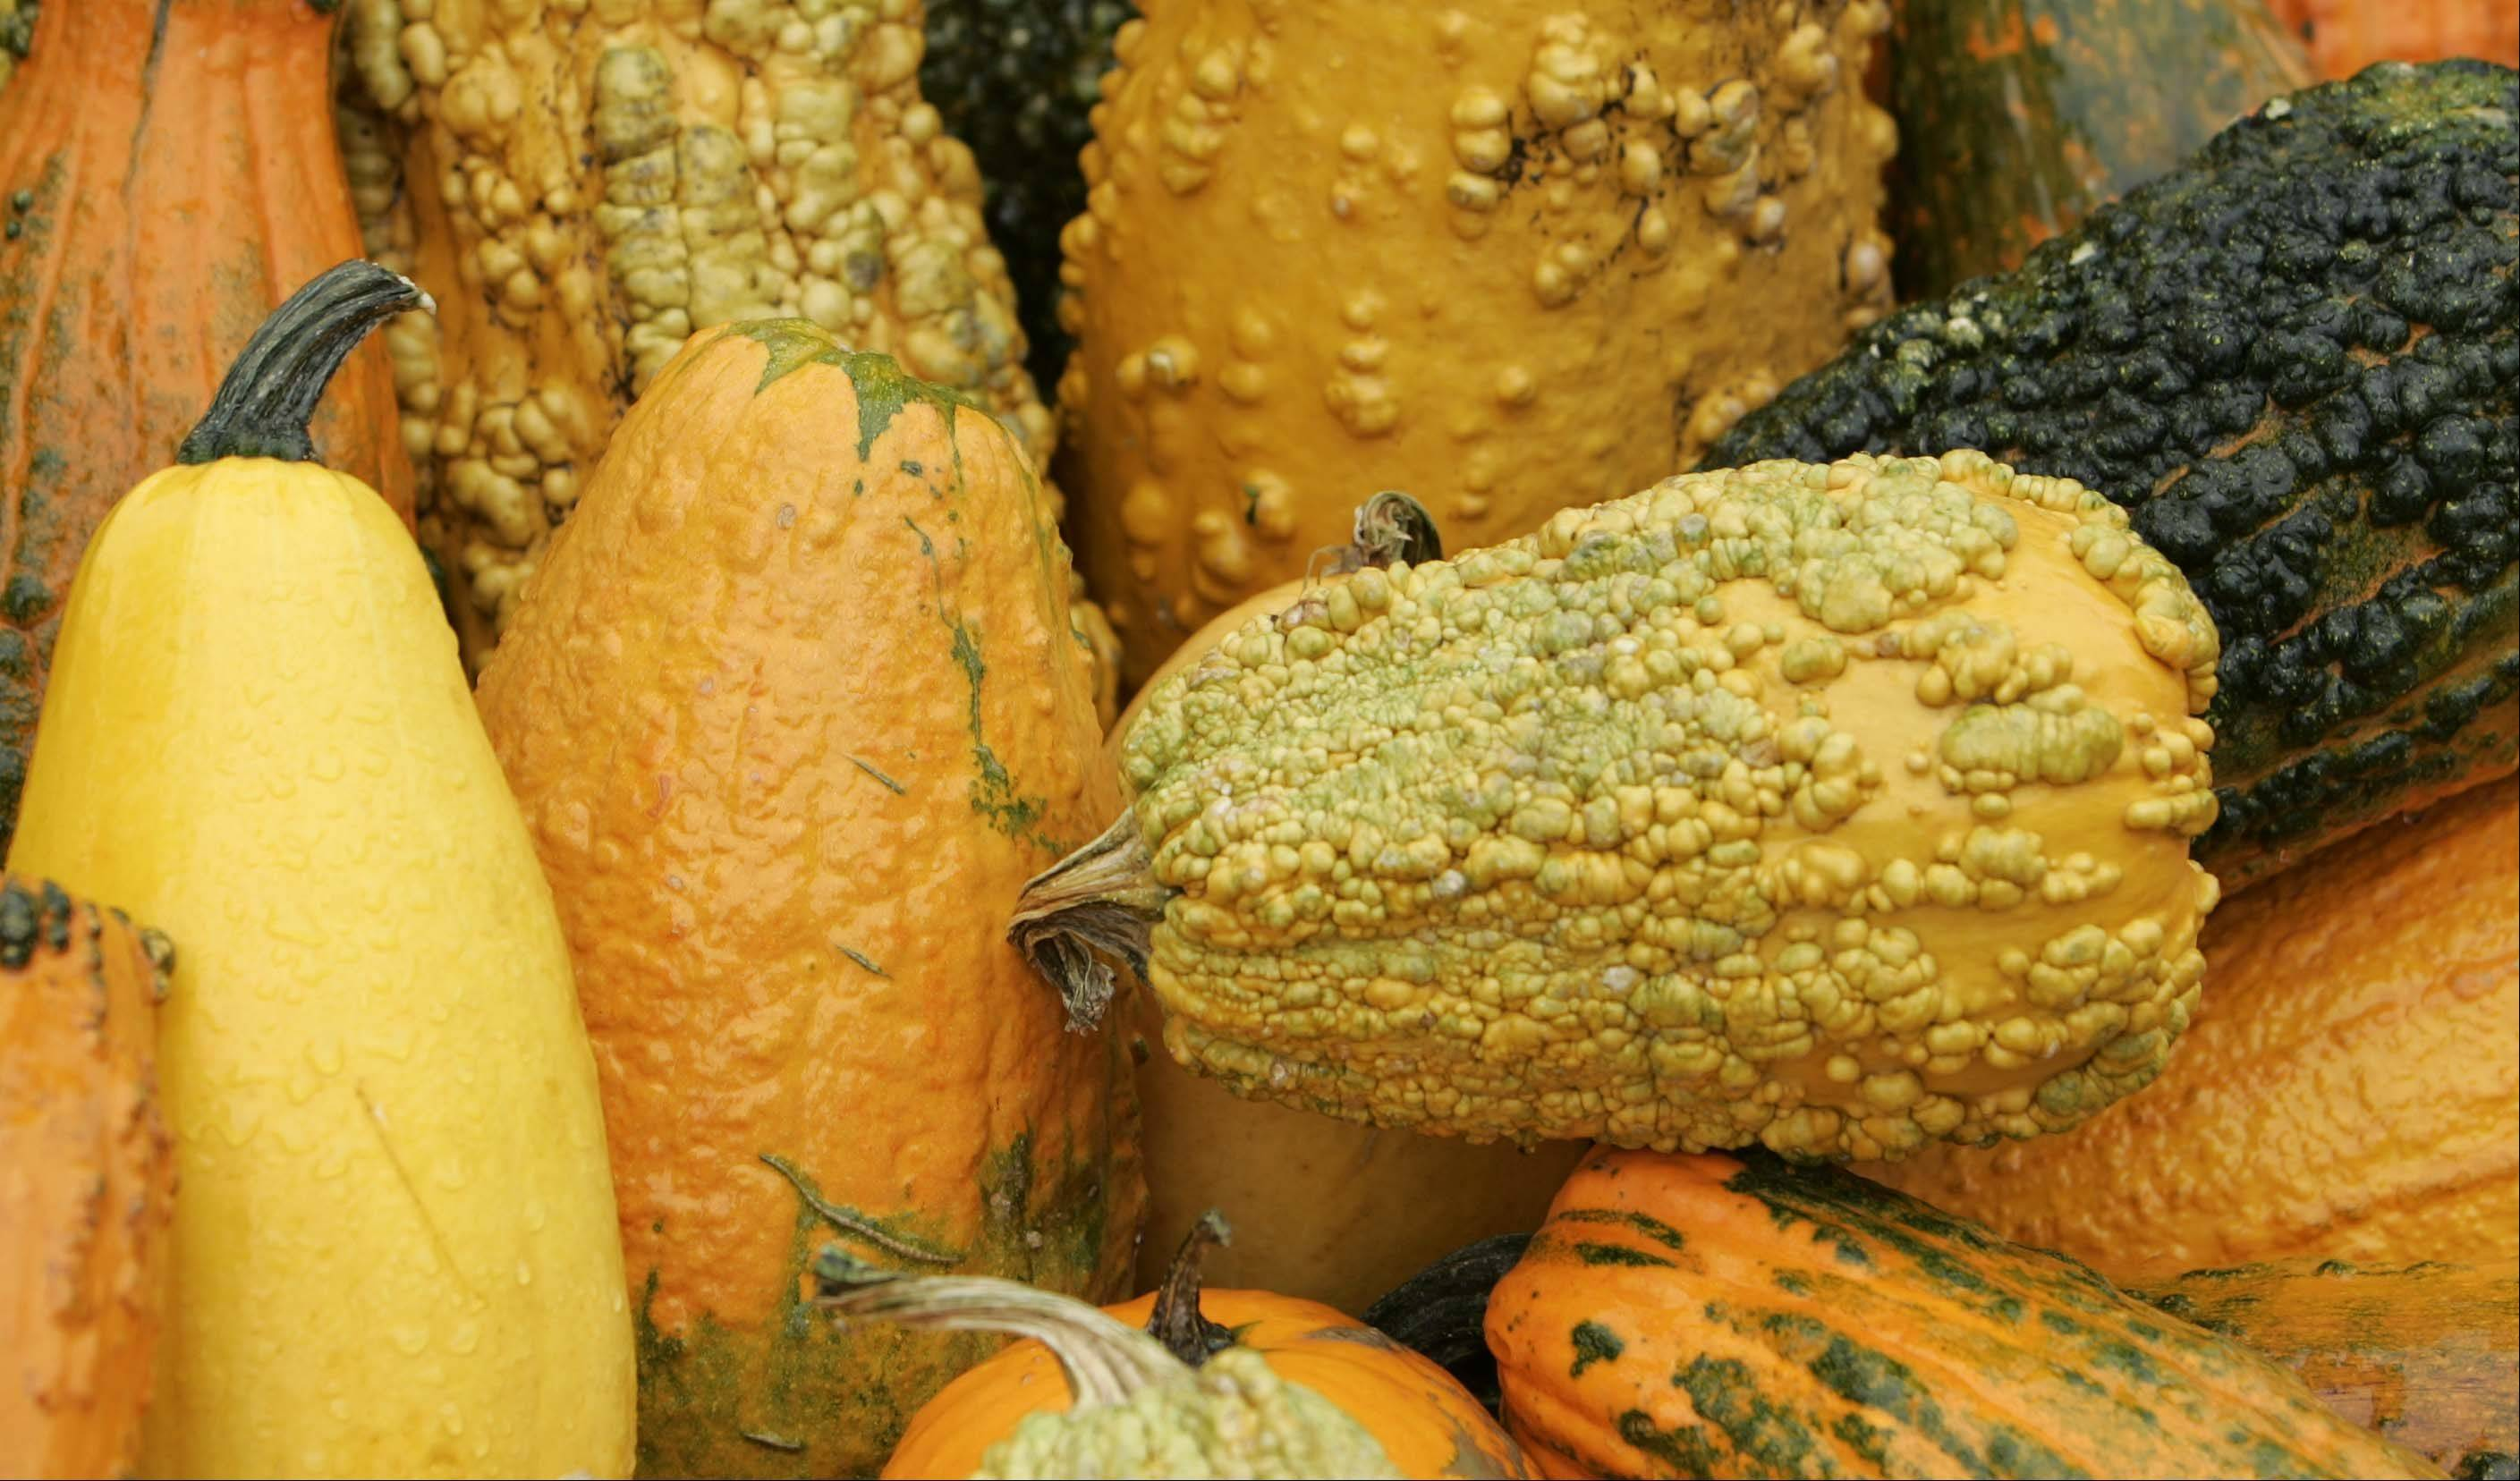 Extra-large bumpy gourds are available for your fall decor needs at Randy�s Vegetables in Sleepy Hollow.